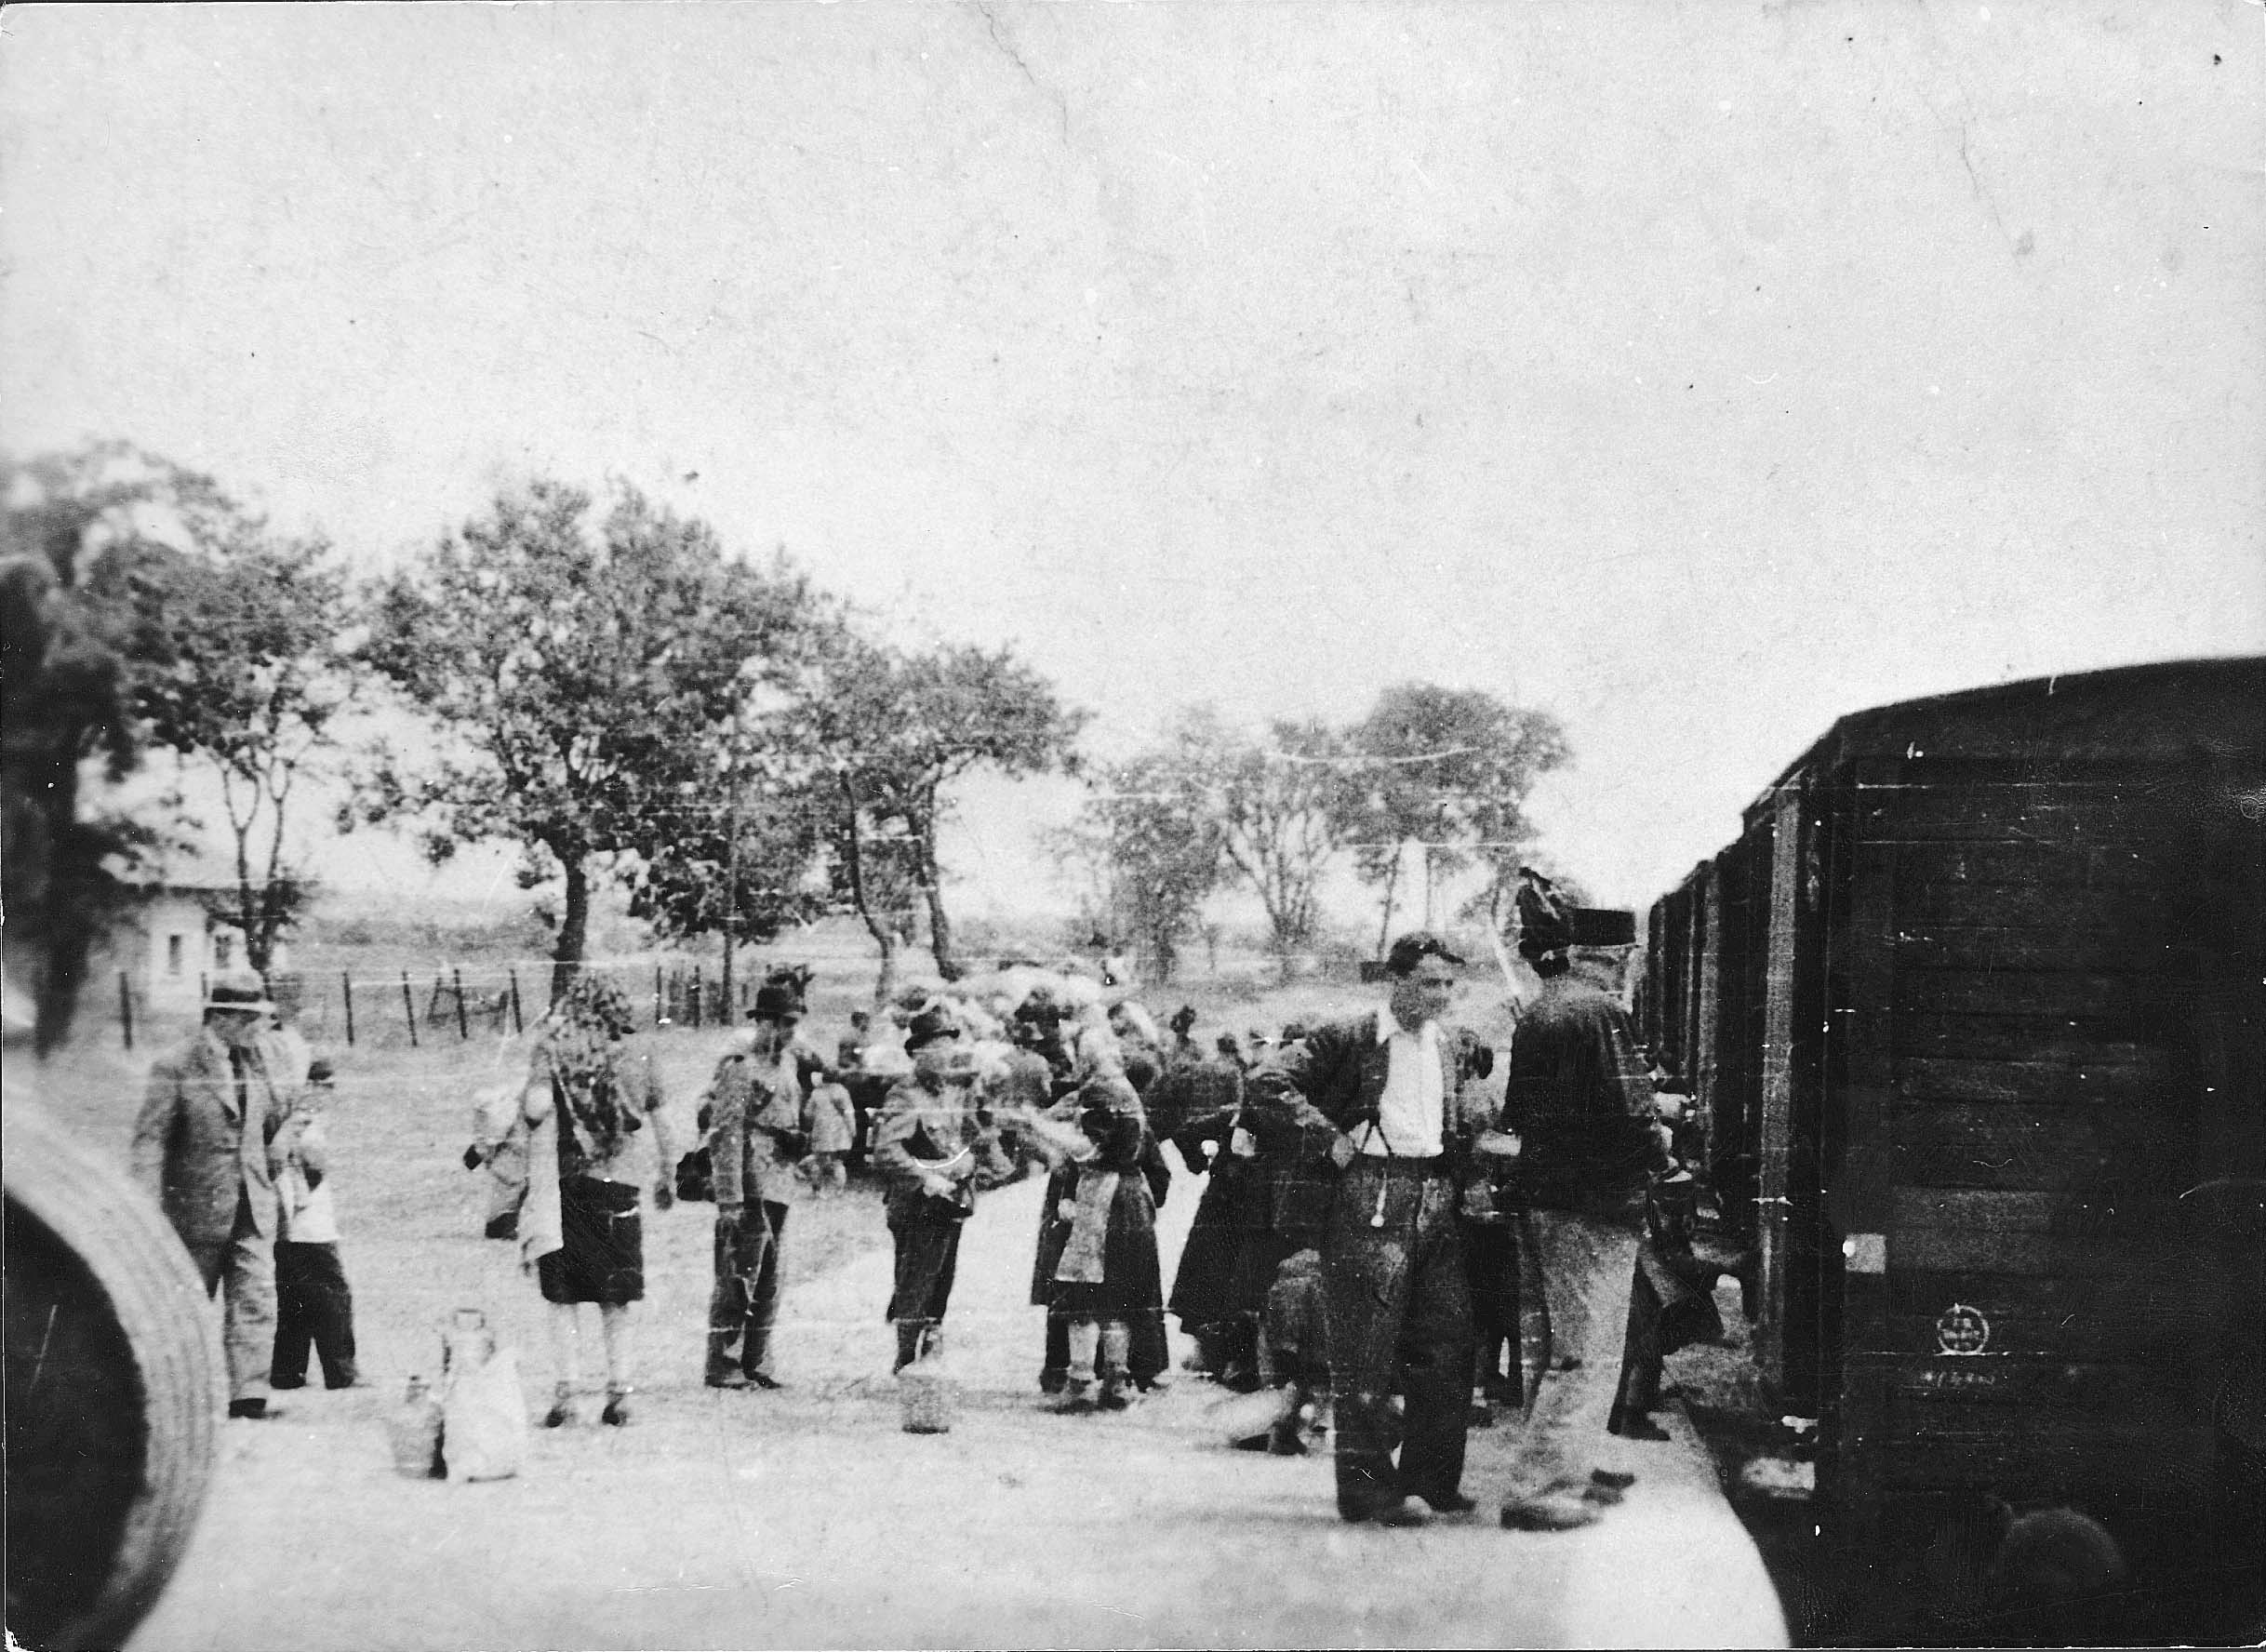 Soltvadkert, Hungary, Jews, being deported by Hungarian gendarmes, about to boarding a deportation train